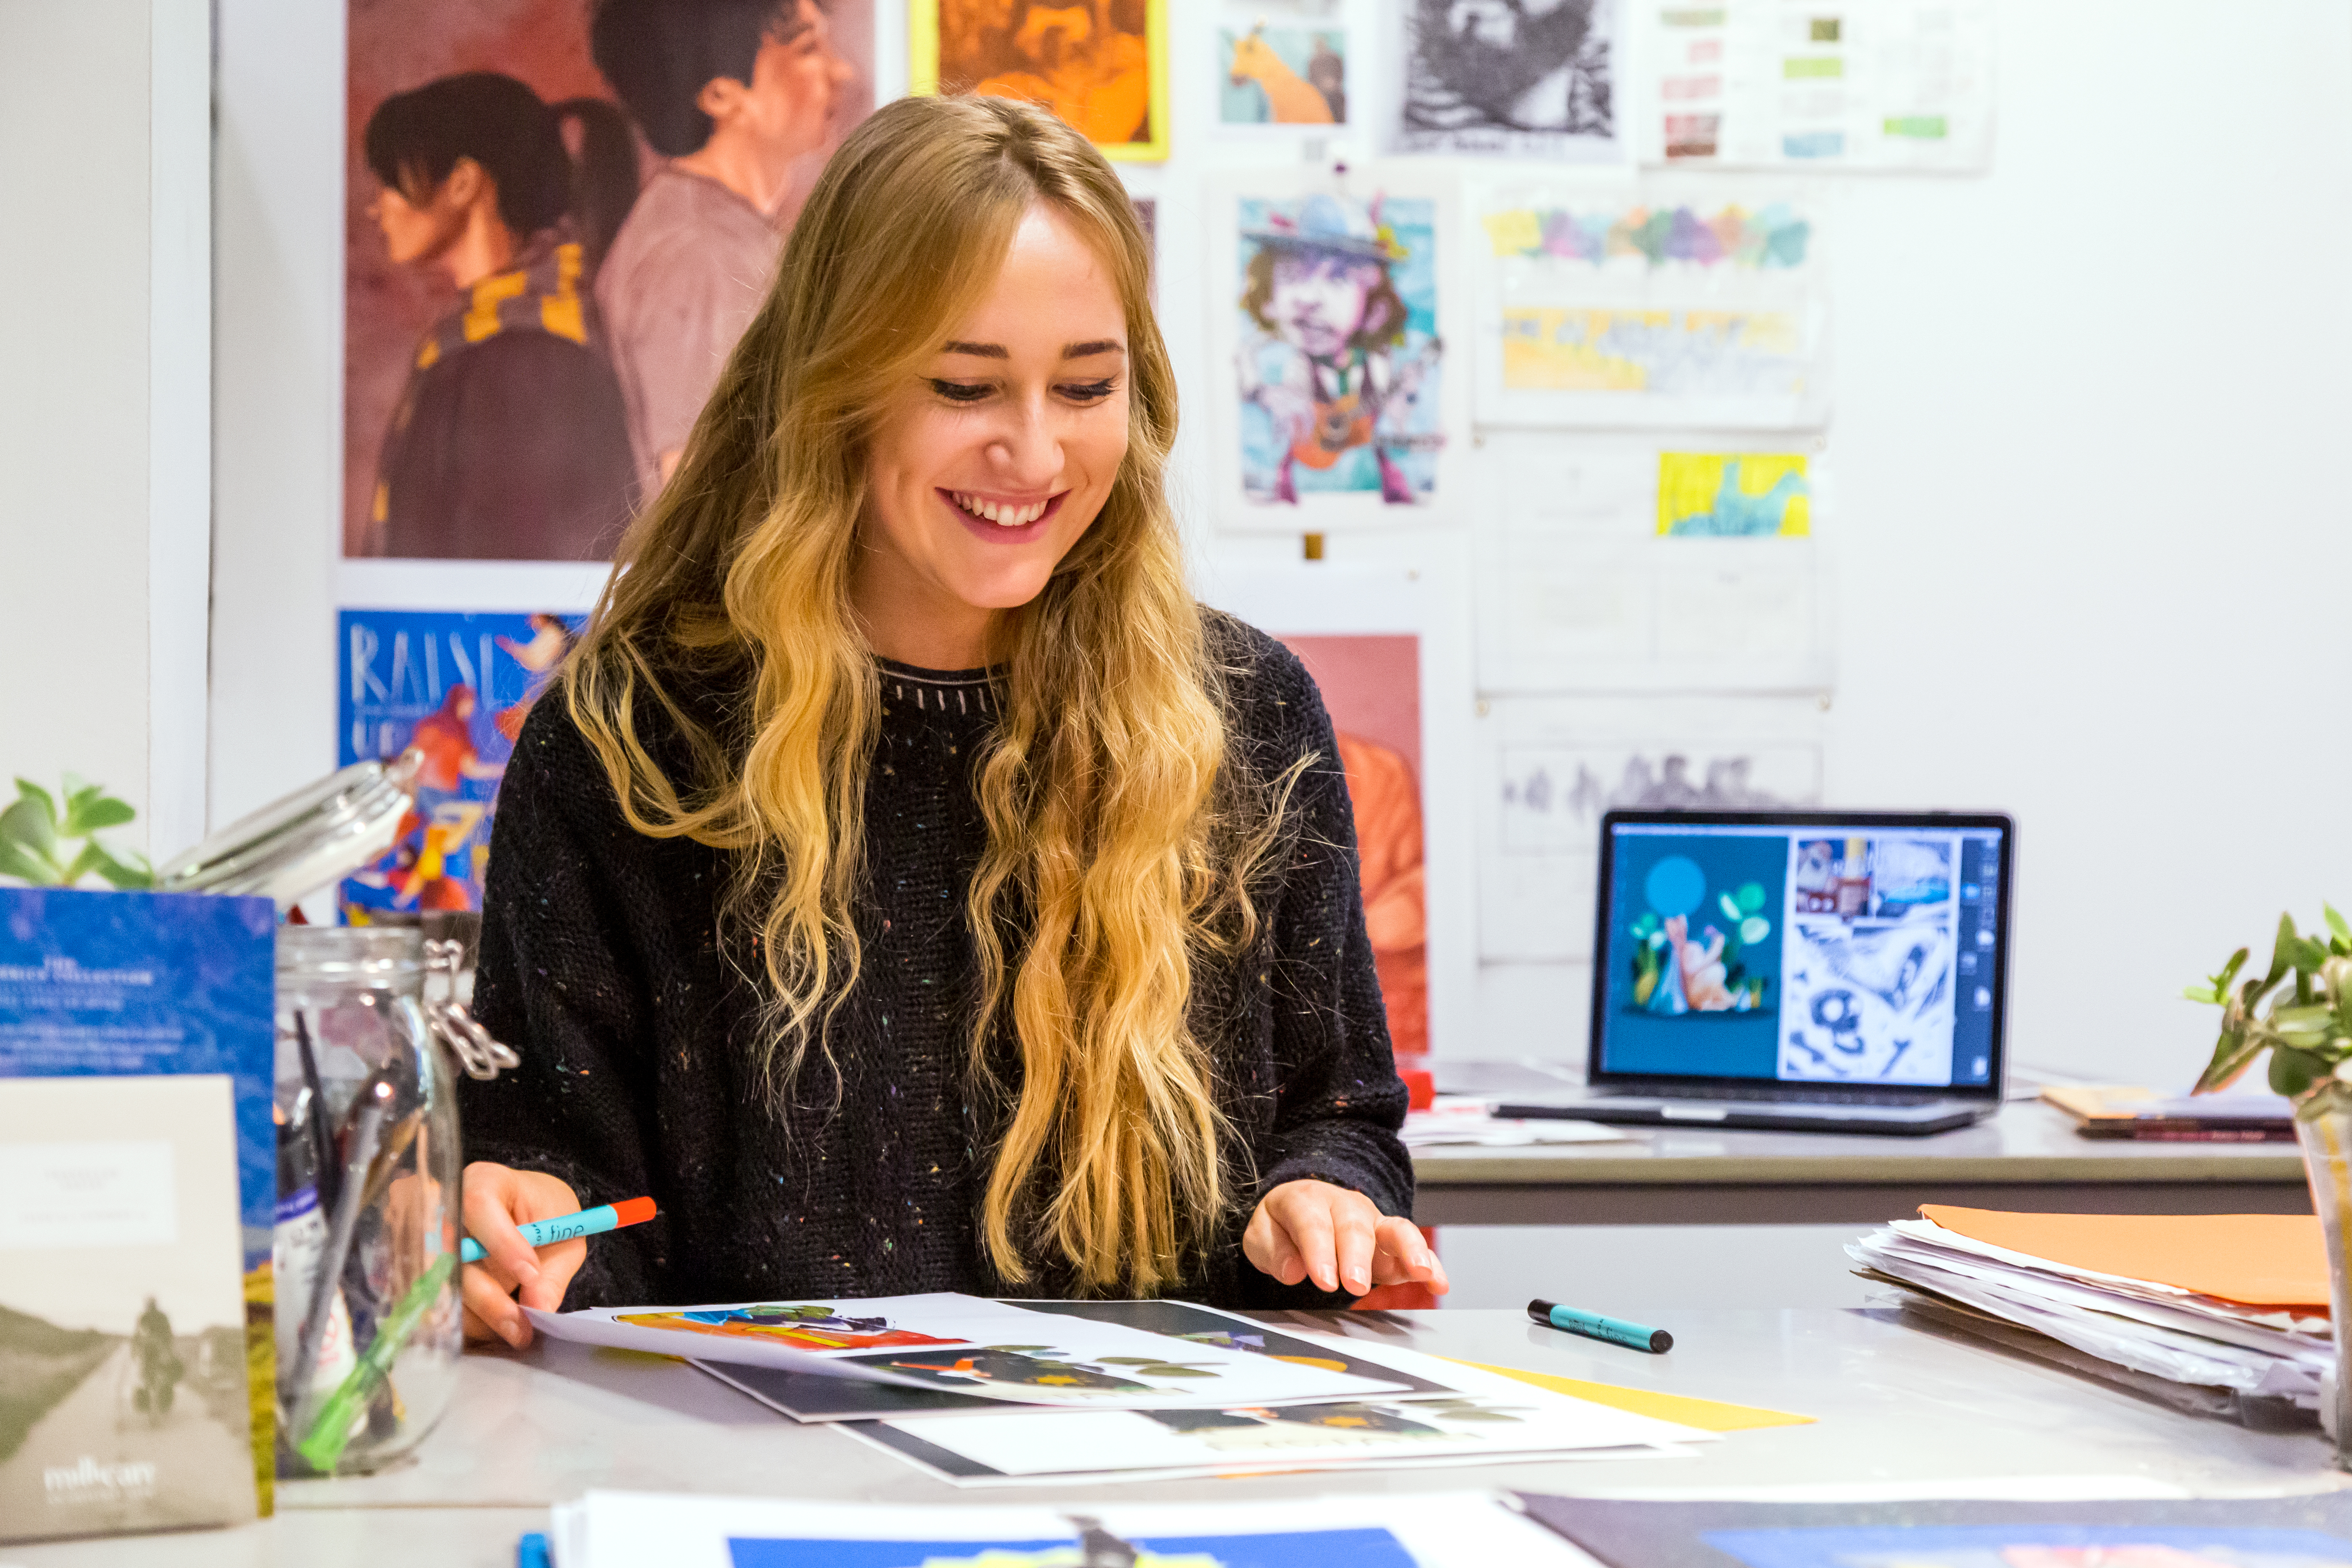 Illustration student Hannah graham in illustration and graphic design studio